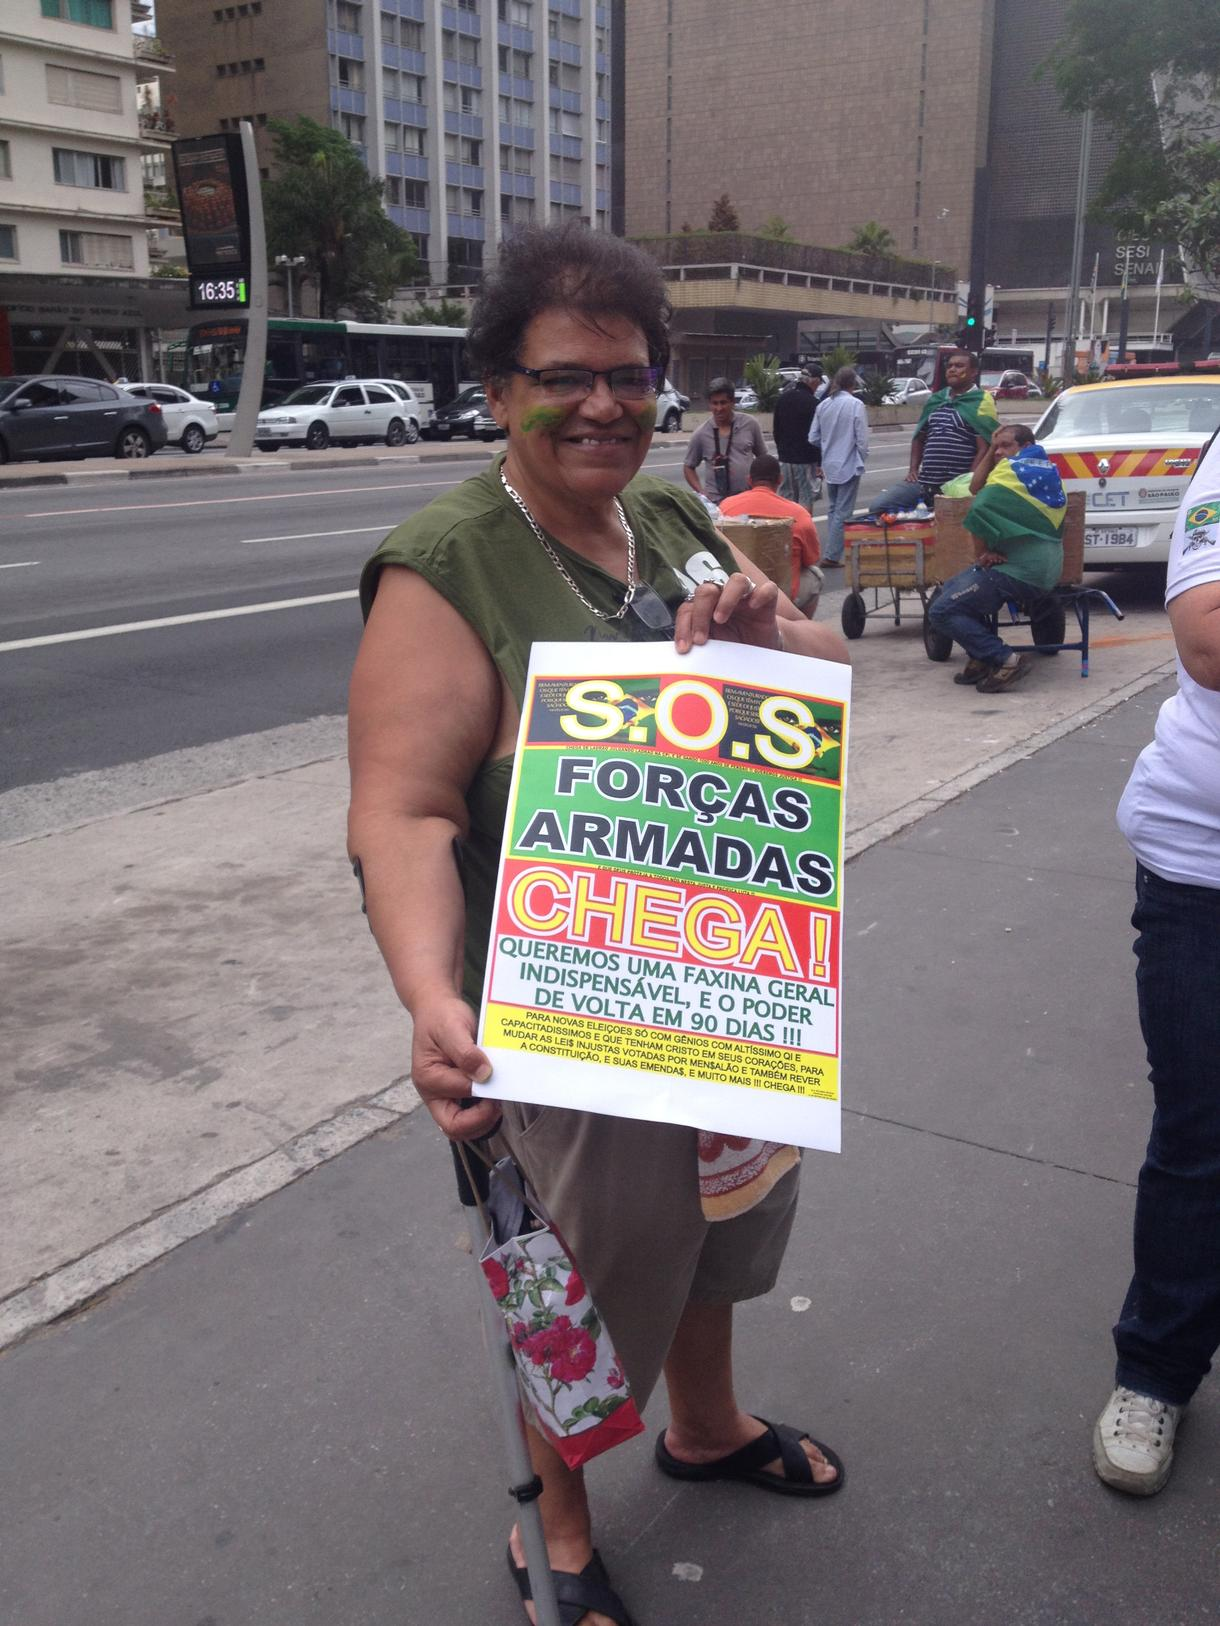 """Protesters calling for return to military government for 90 days. The placard in the picture reads:""""S.O.S. Armed Forces: Enough! We want a fundamental cleanup, and power back in 90 days.""""Photo courtesy of Vice News."""